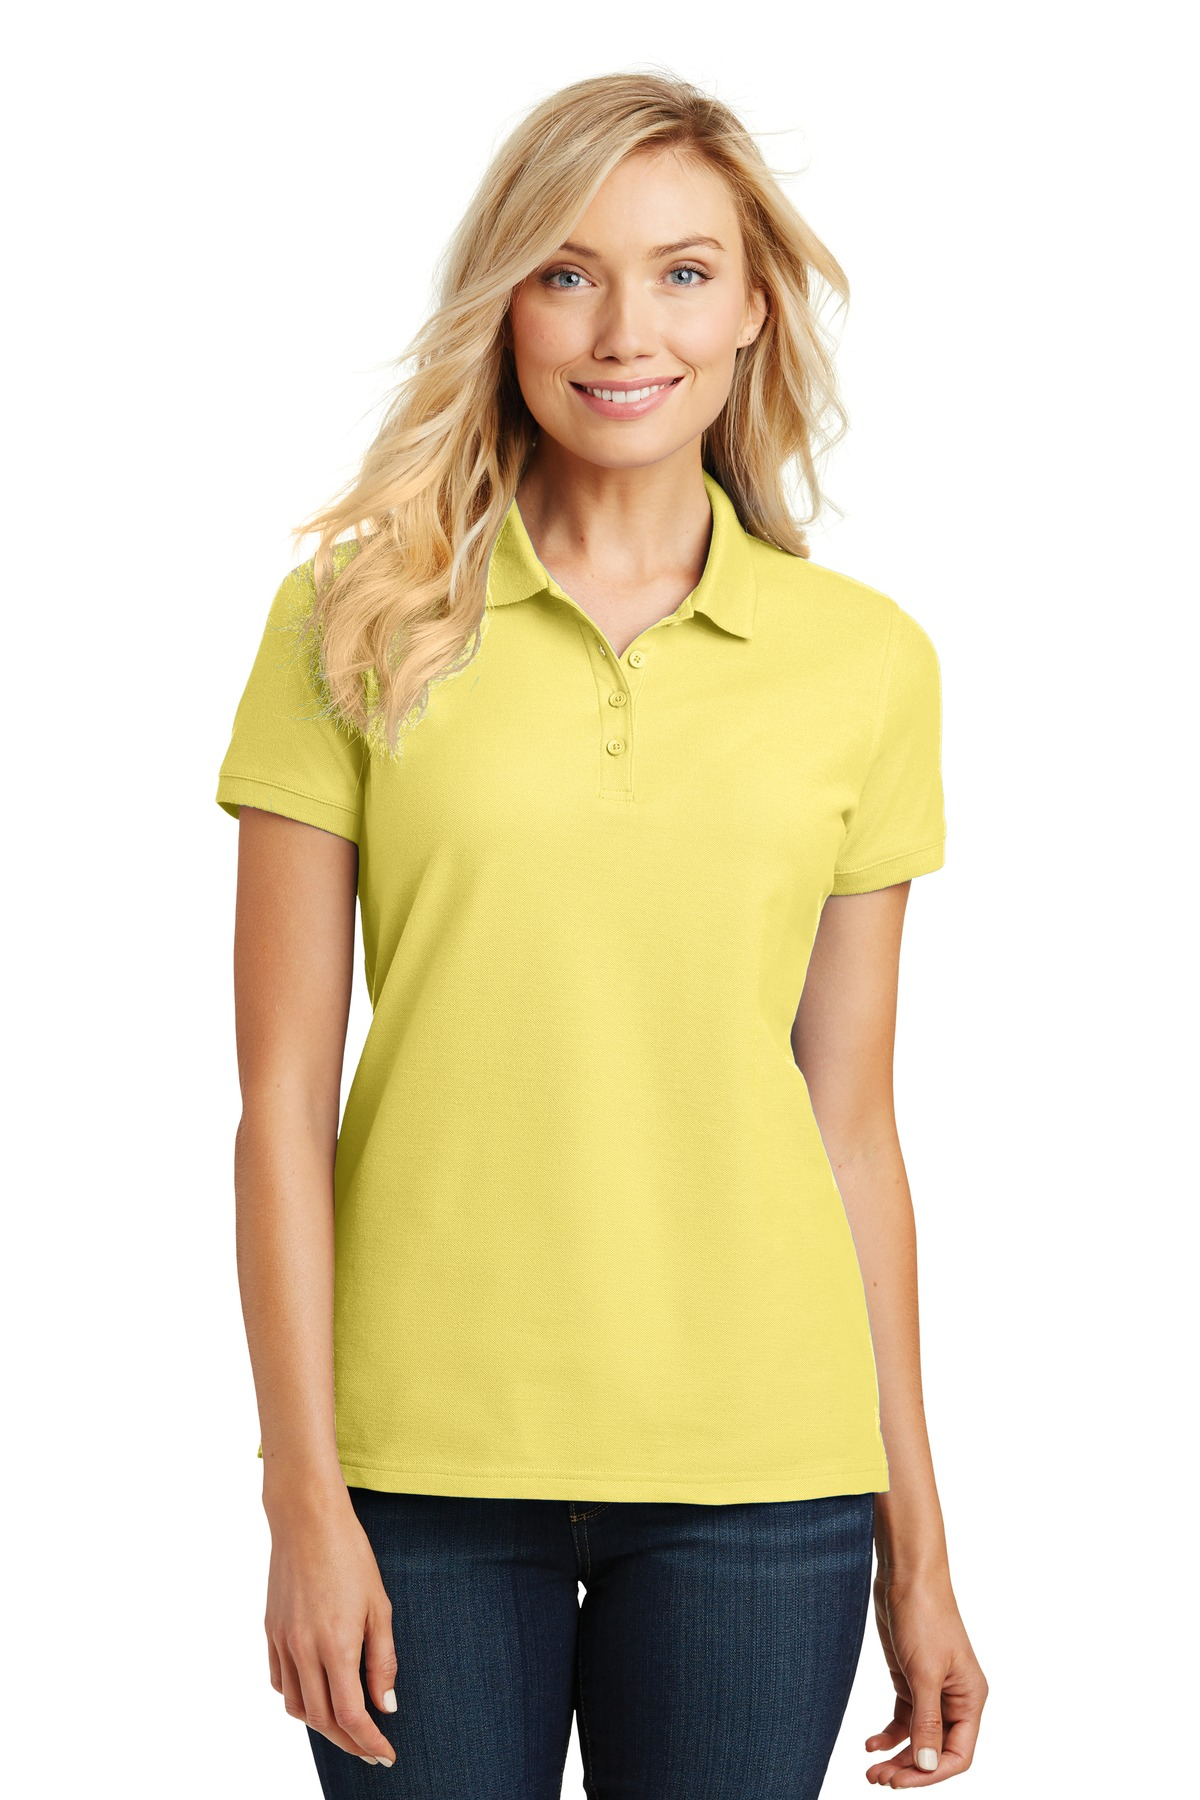 Port Authority ®  Ladies Core Classic Pique Polo. L100 - Lemon Drop Yellow